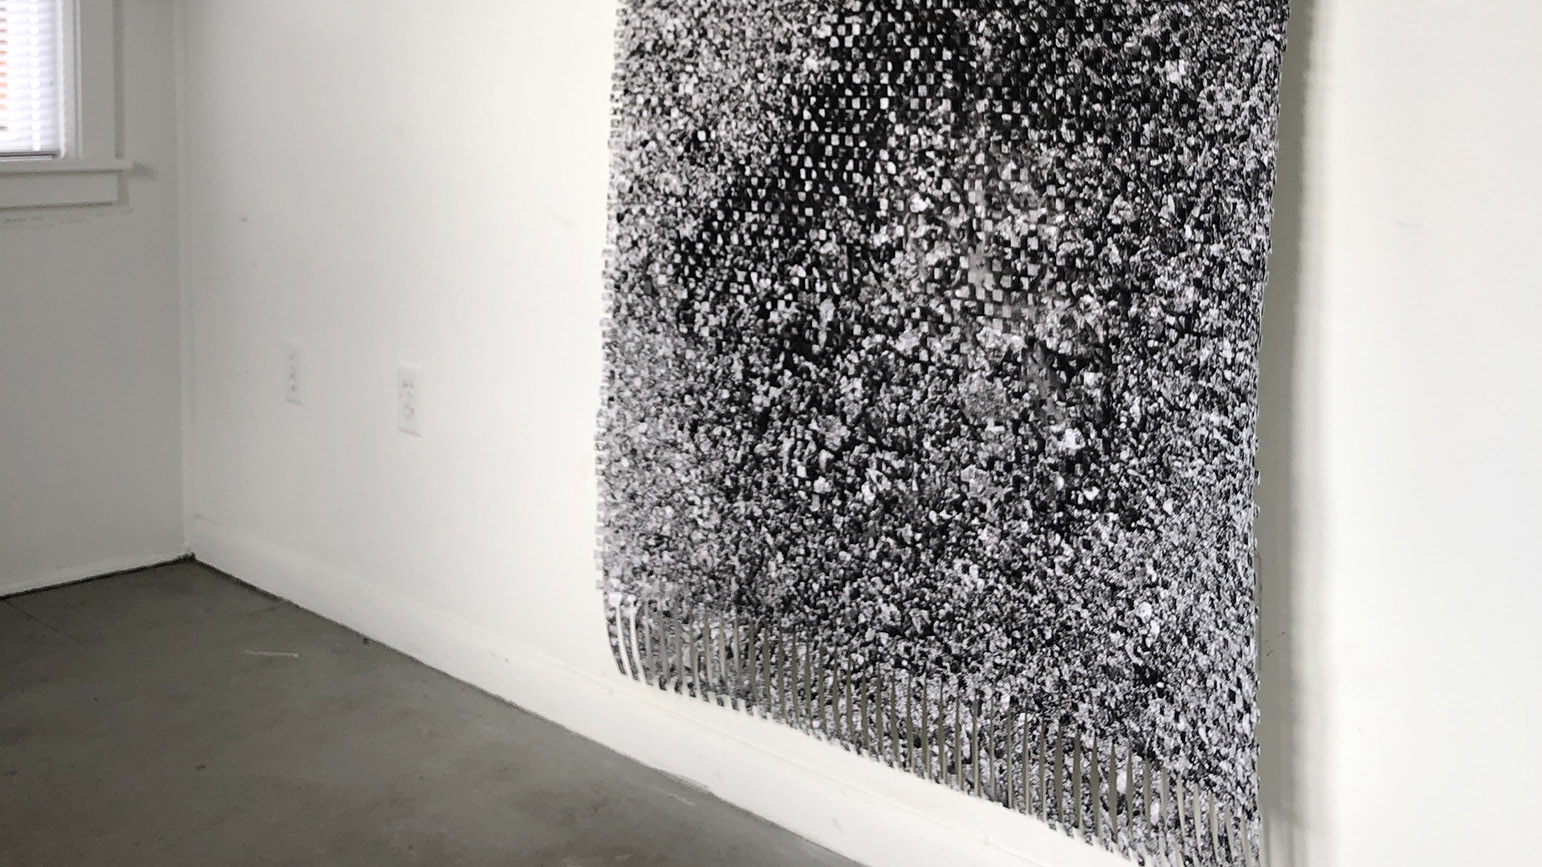 Photograph of a paper weaving of road texture installed in a gallery